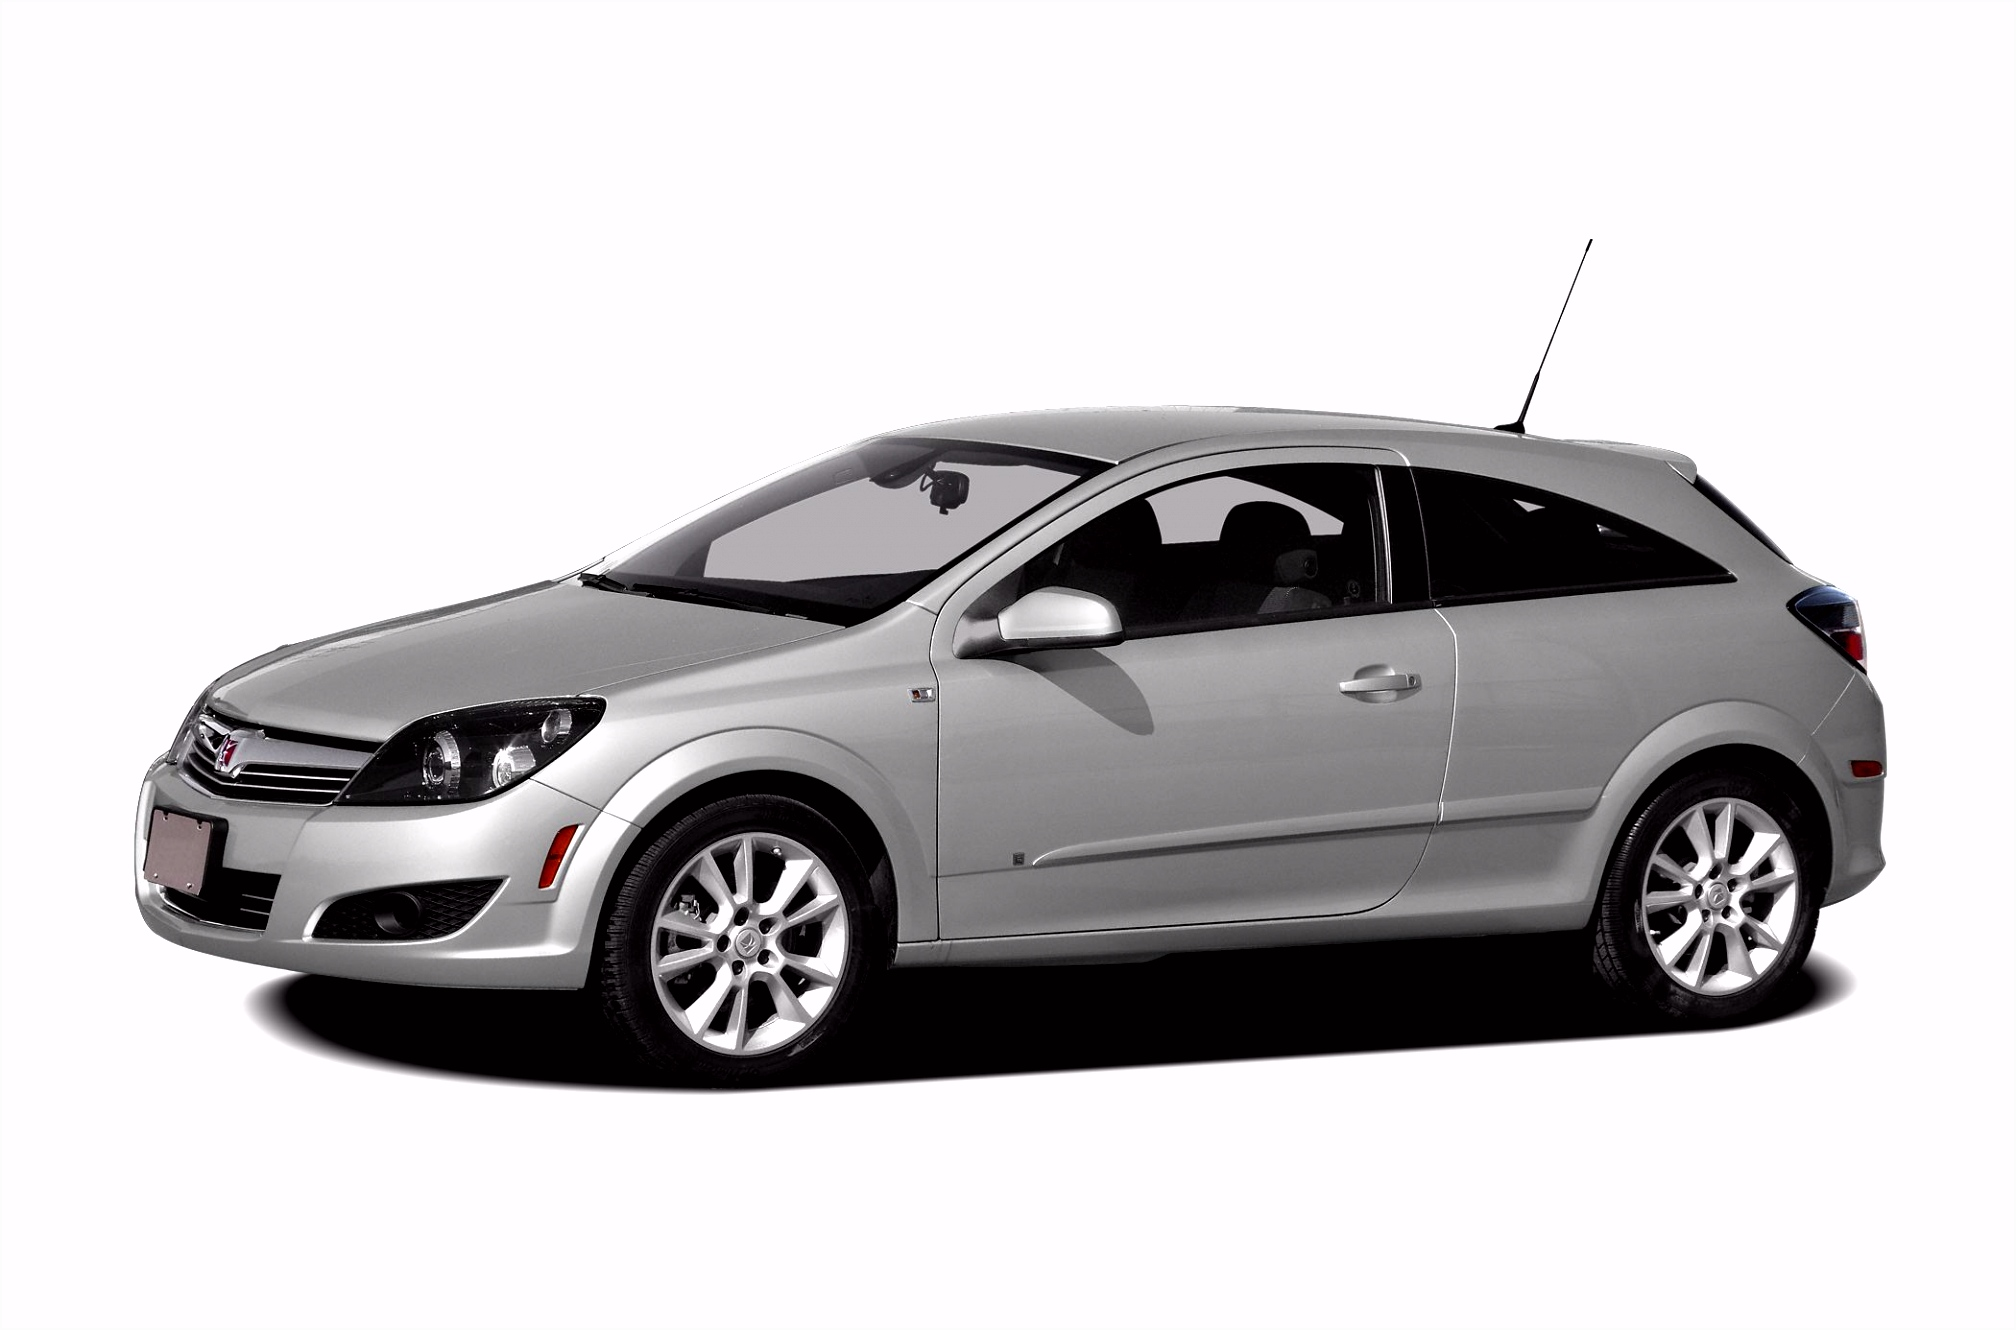 2008 Saturn Astra XR 2dr Hatchback Specs and Prices